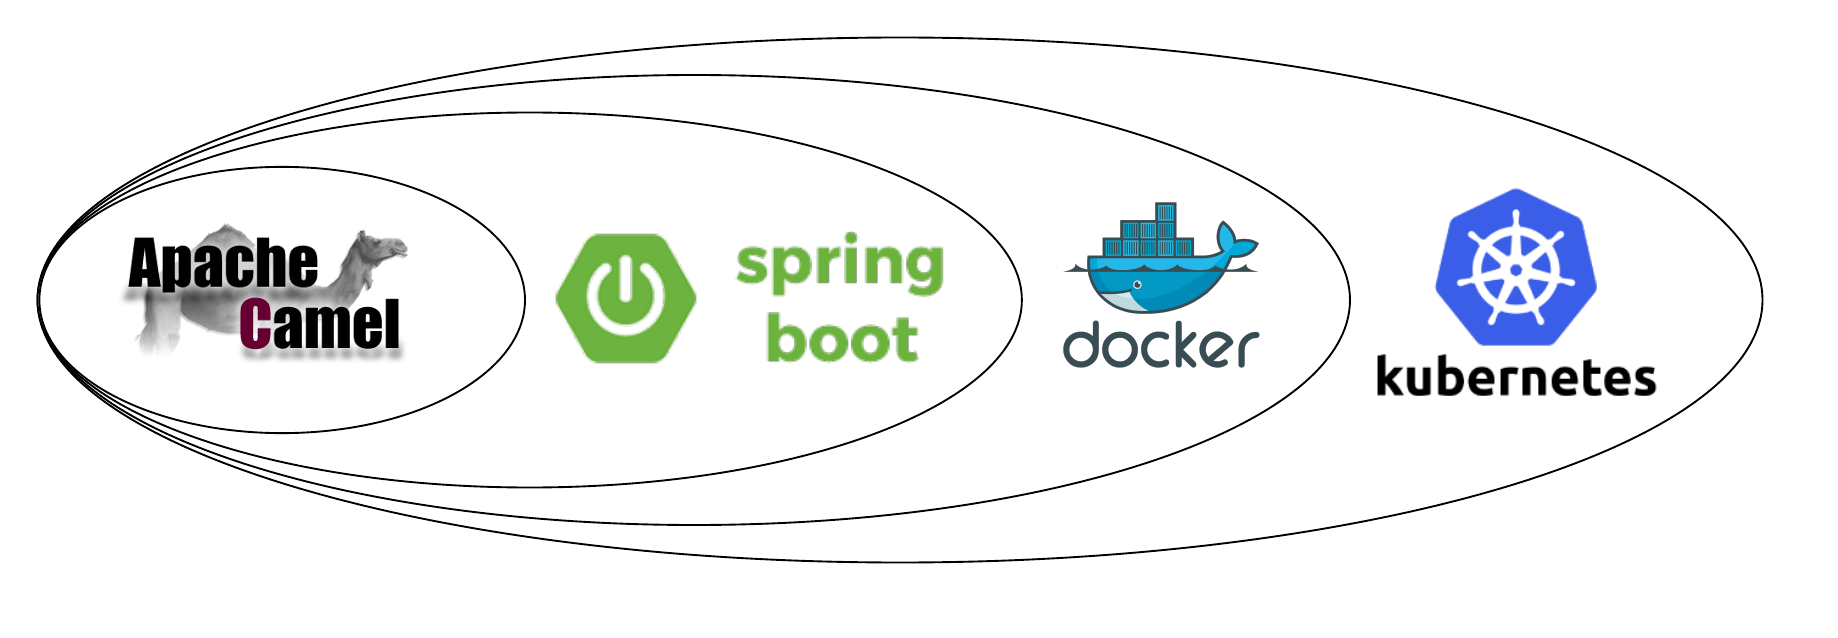 Spring Cloud For Microservices Compared To Kubernetes Rhd Blog